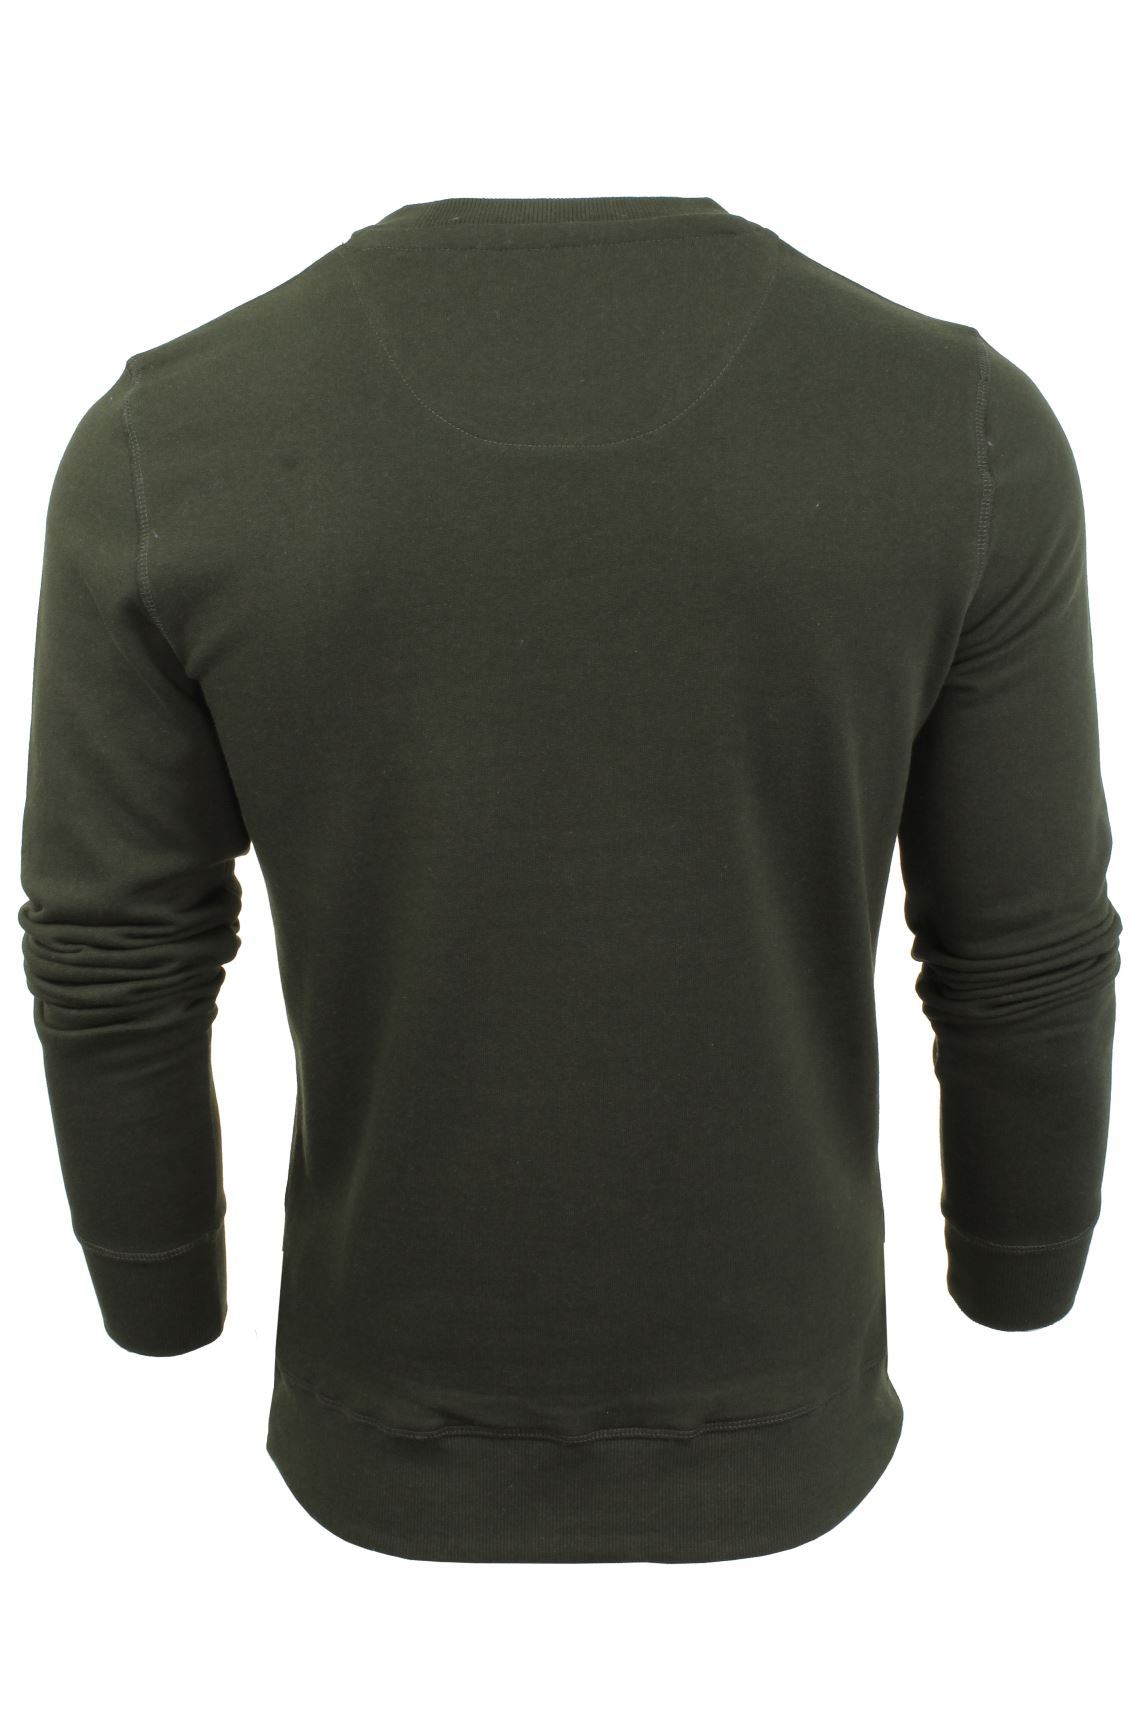 Mens-Sweater-Jumper-Brave-Soul-Jones-Crew-Neck-Sweatshirt thumbnail 13